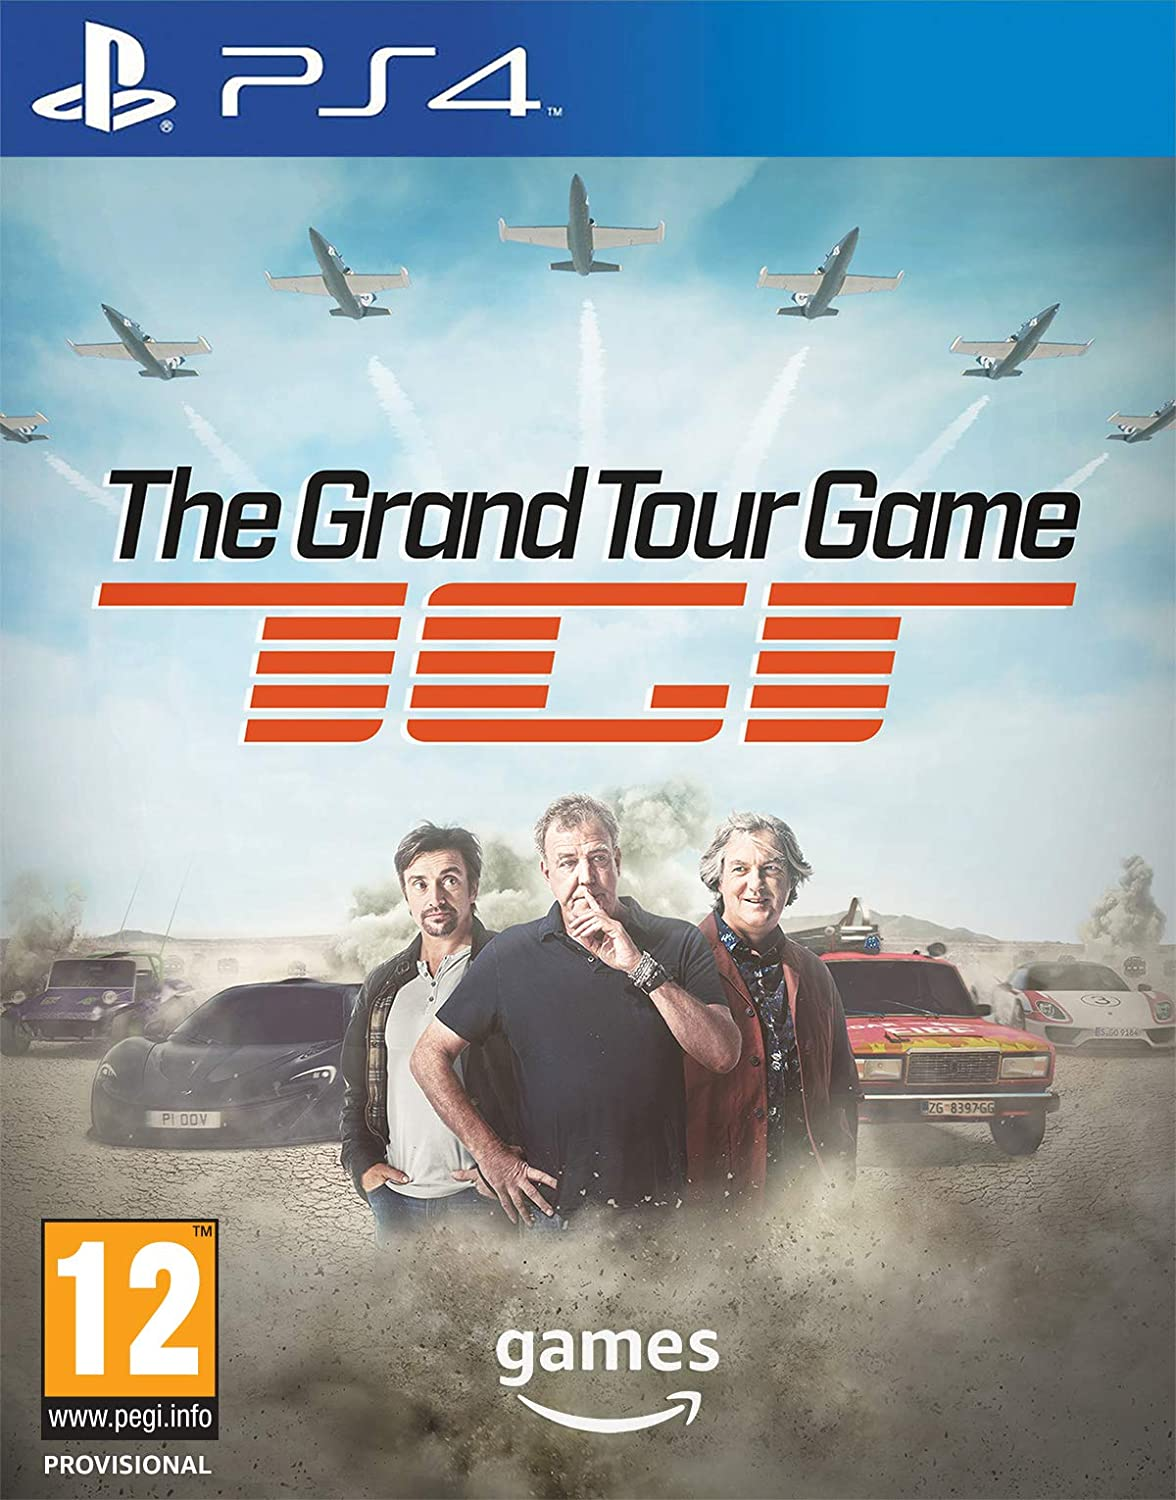 71a496b0d4c The Grand Tour Game - Standard Edition | PS4 Download Code - UK Account:  Amazon.co.uk: PC & Video Games